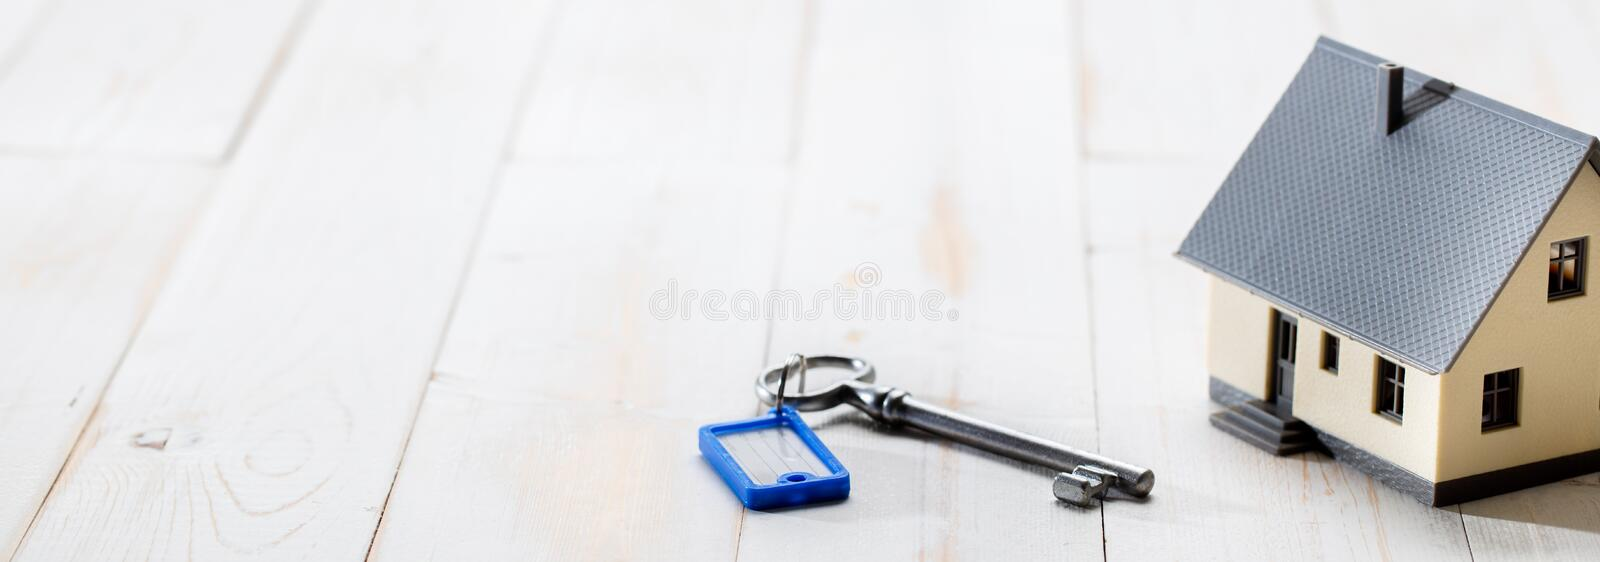 Concept of home ownership, rental or investment with house key. Concept of house ownership, rental, investment, residential future with a key and home set on stock image